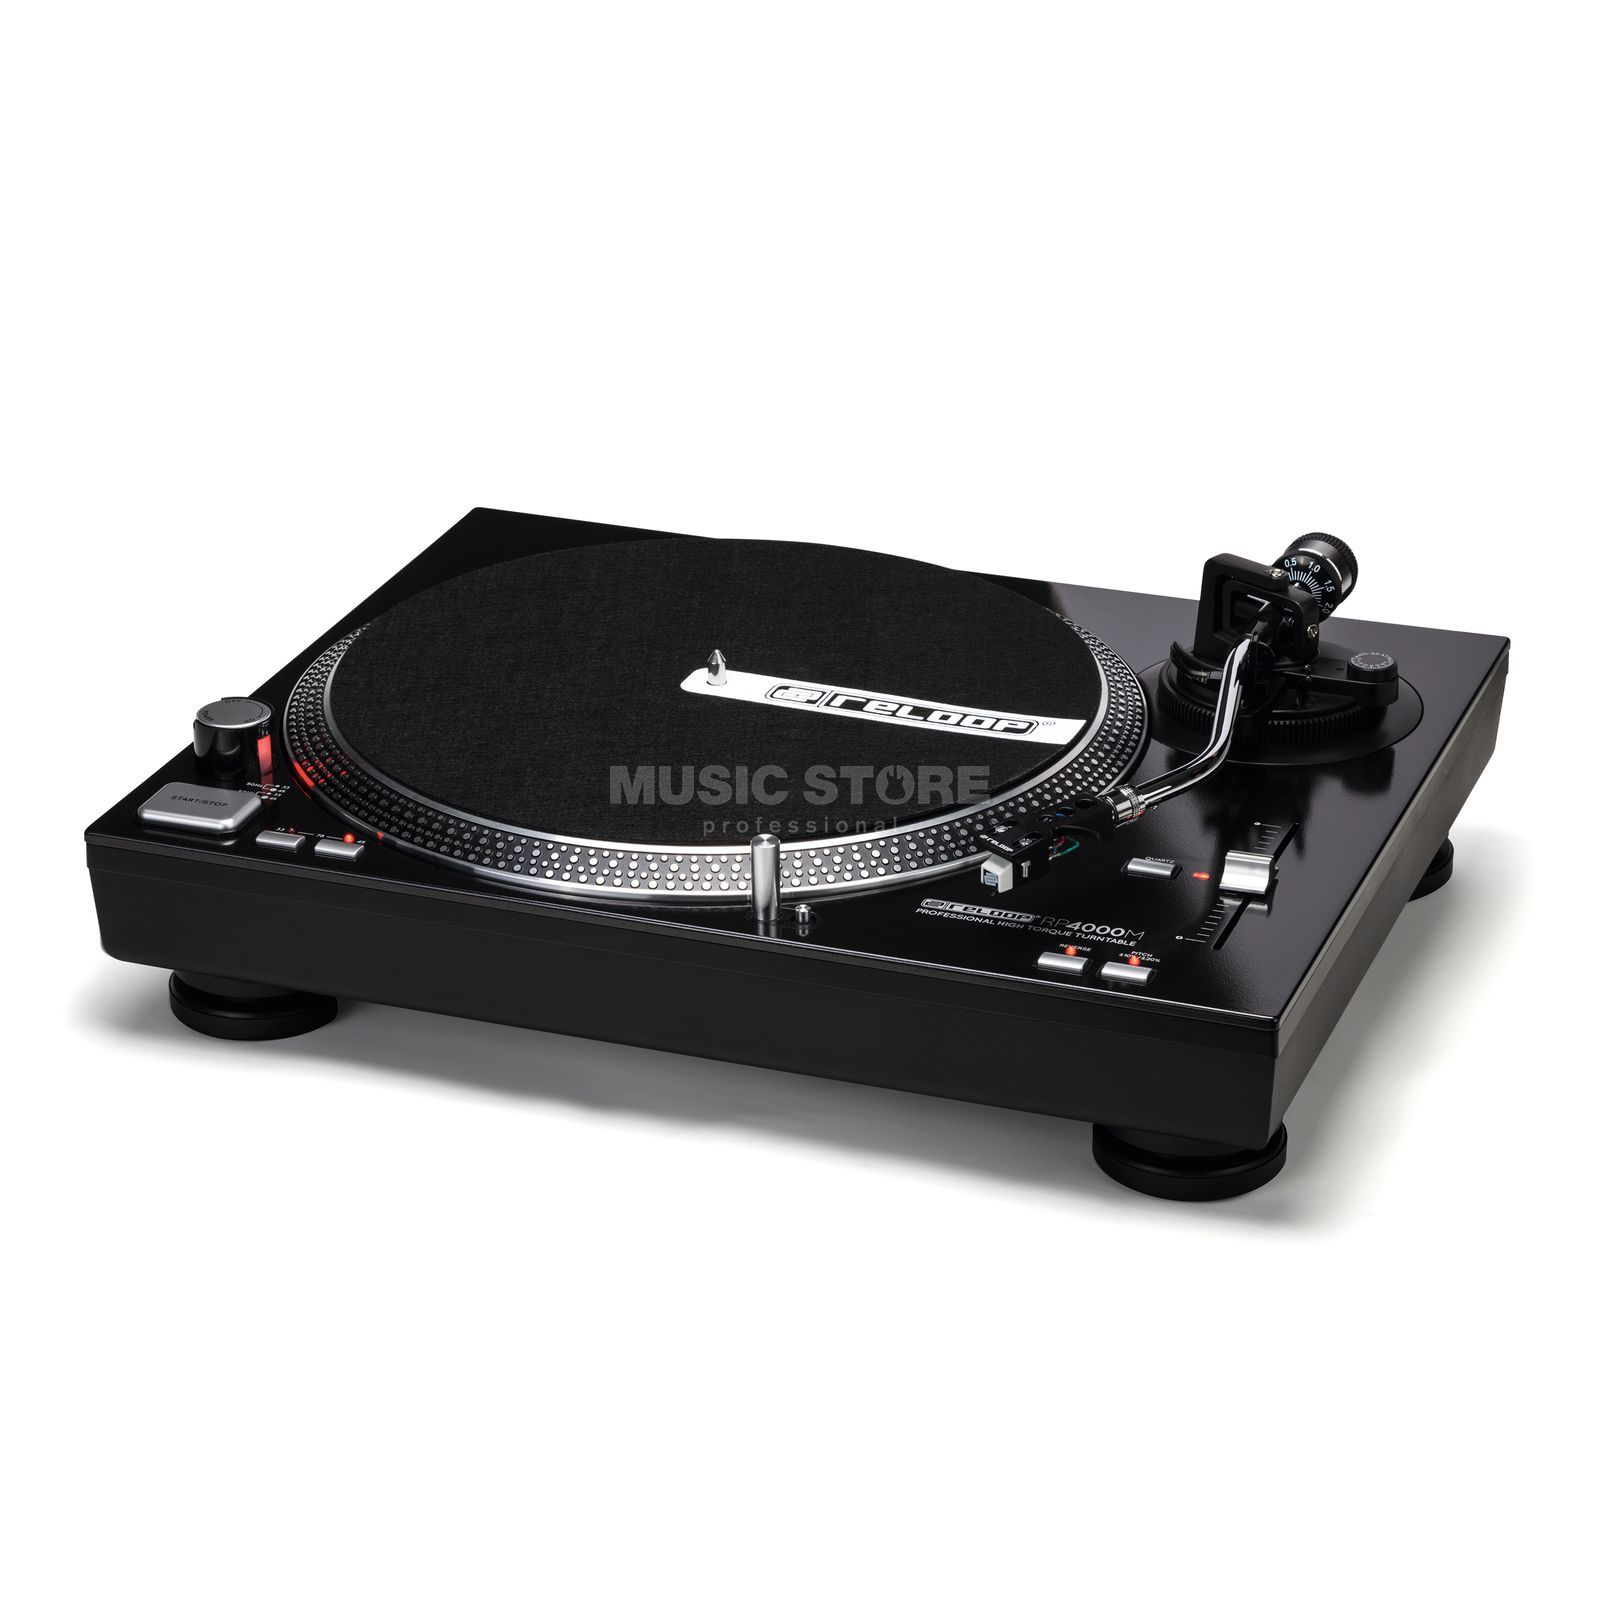 Reloop RP-4000M High Torque DJ-Turntable Изображение товара